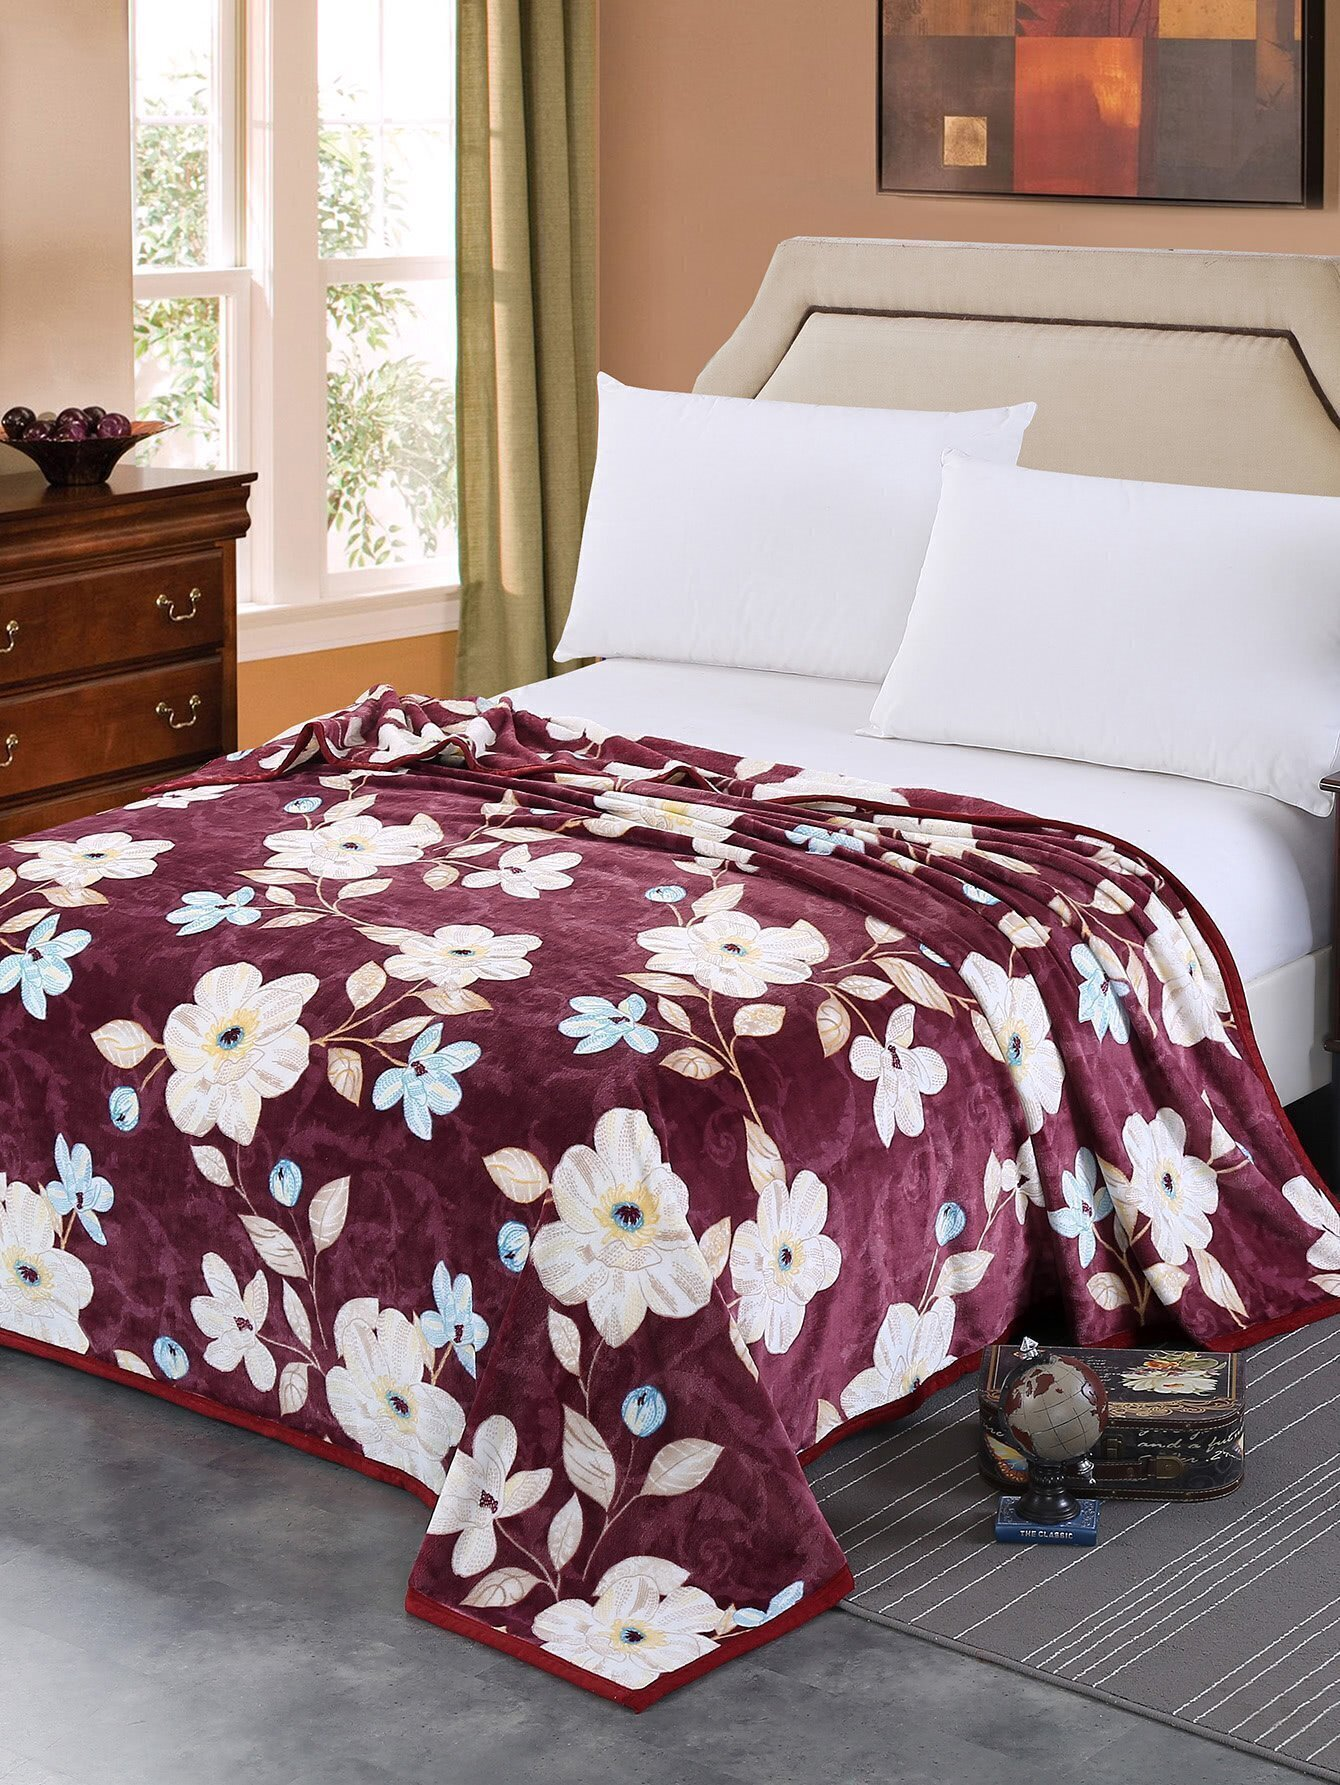 All Over Florals Plush Throw Blanket new 2017 throw blanket 1piece 150 200cm 100